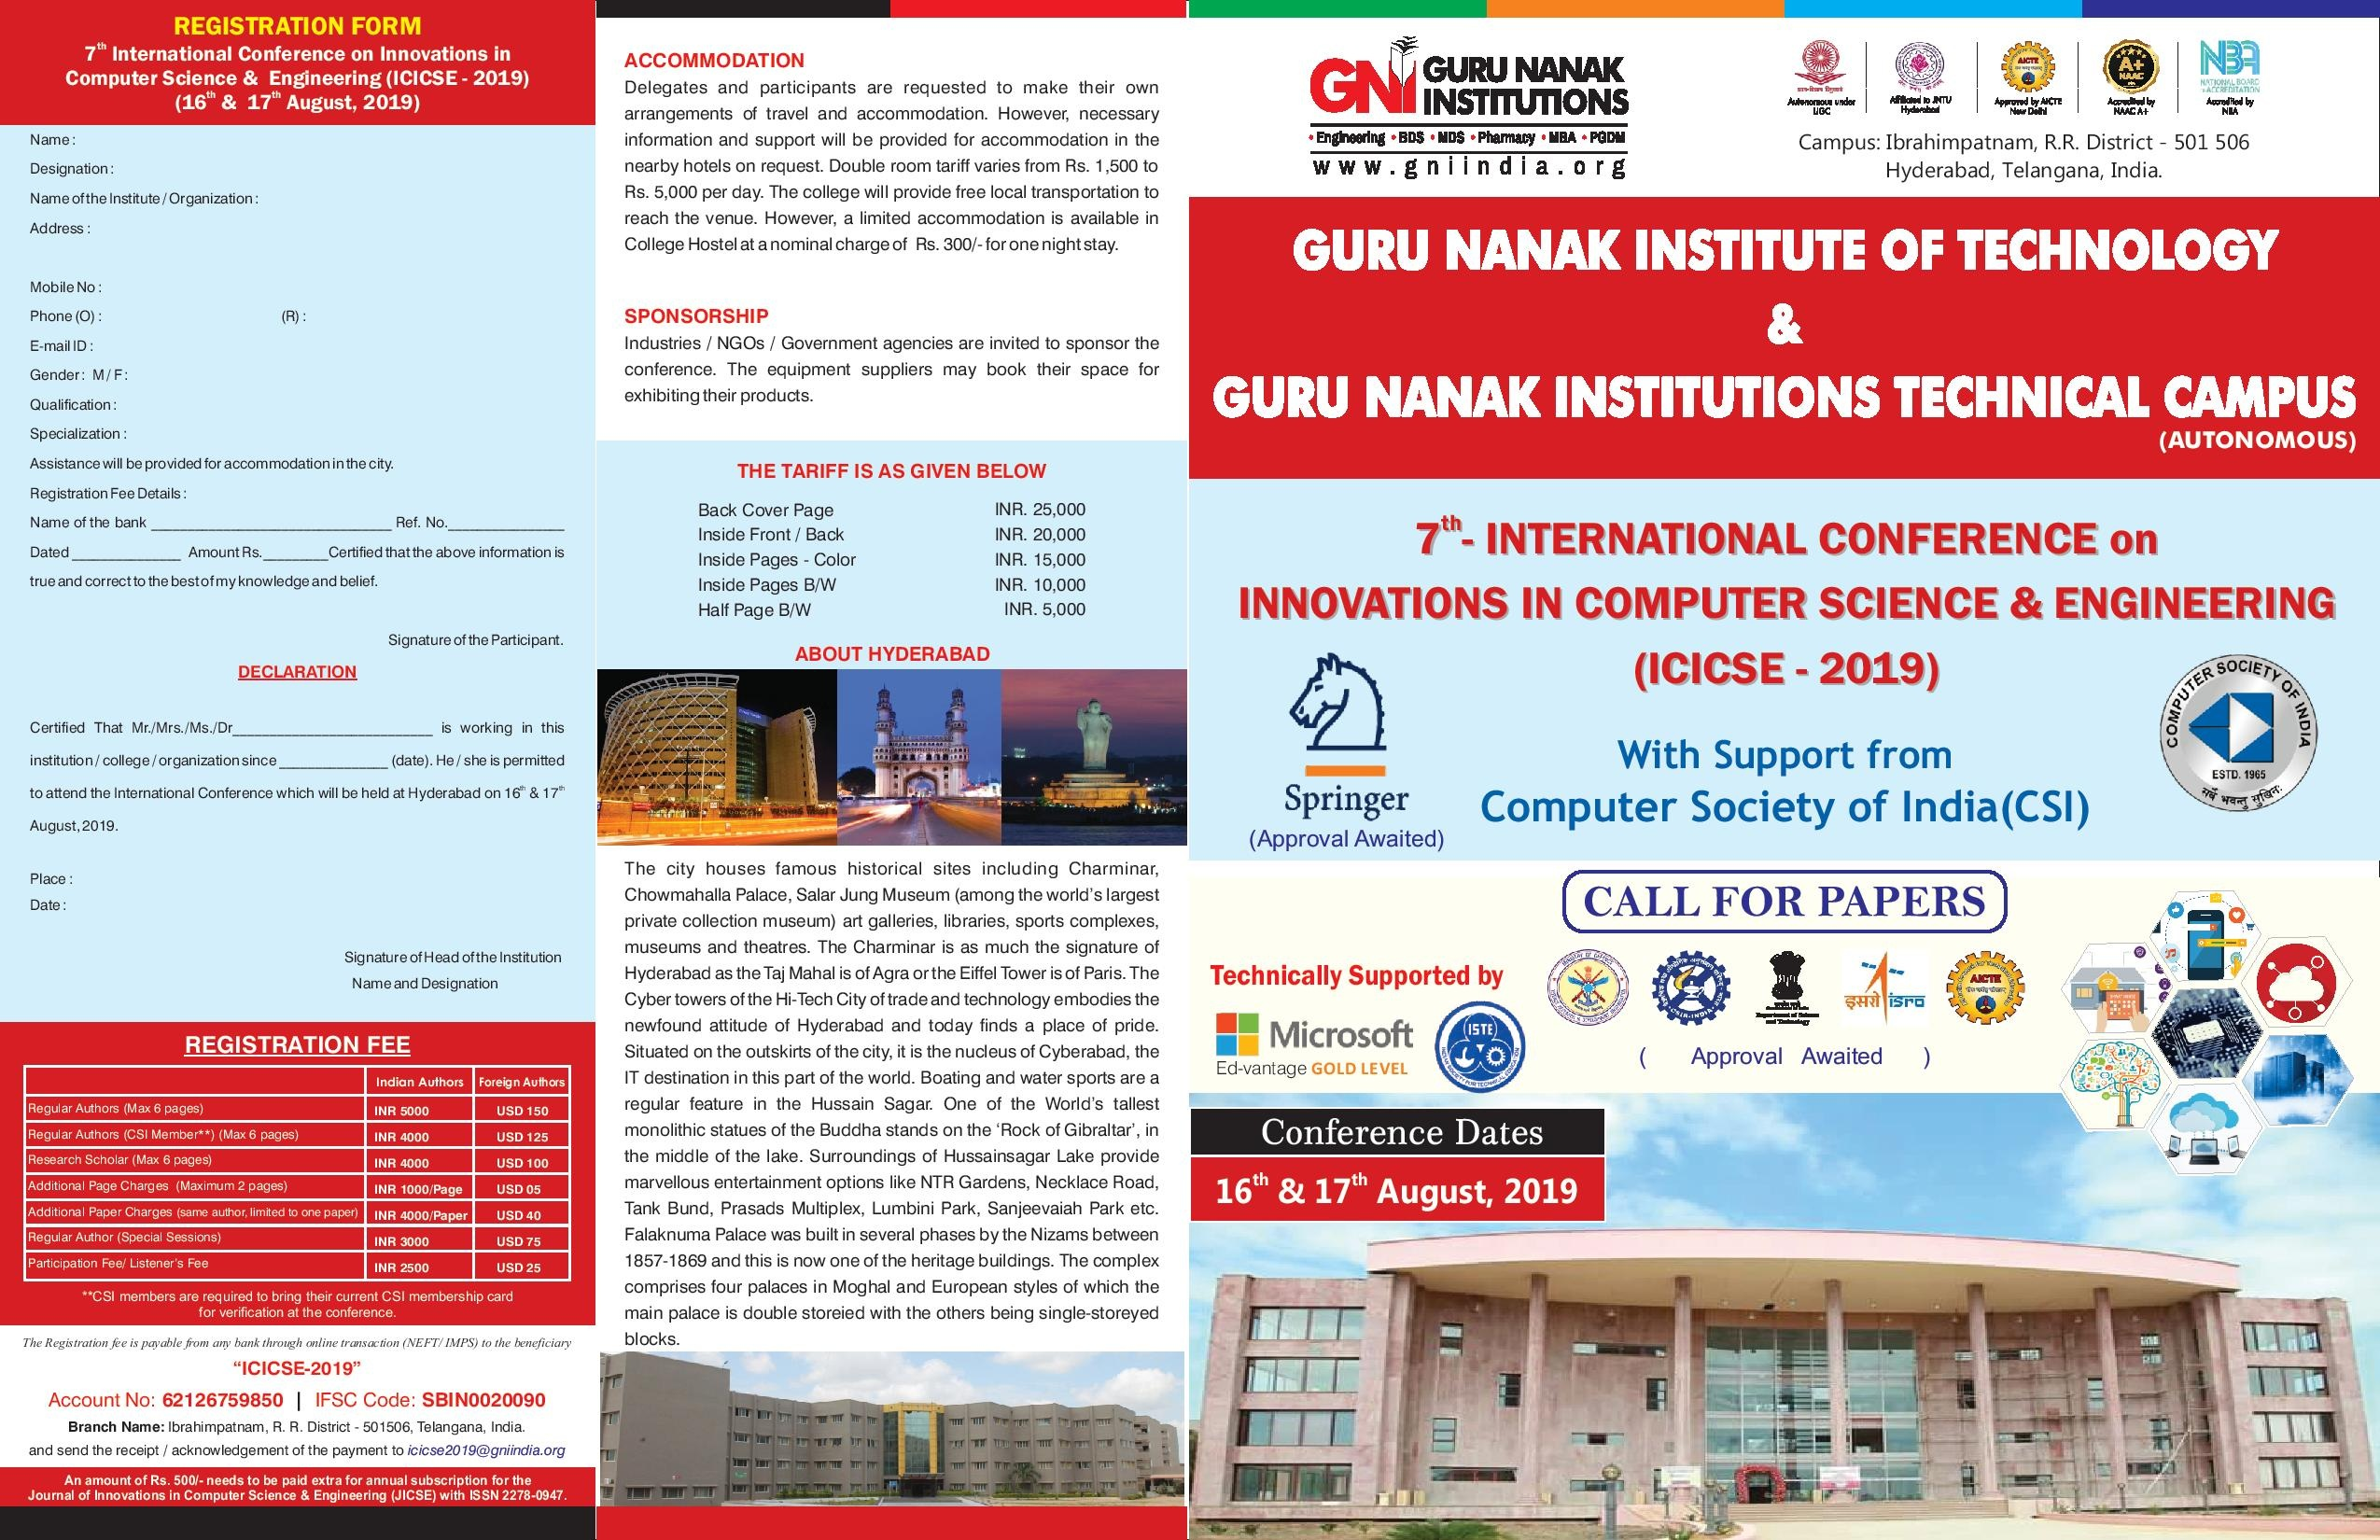 7th International Conference on Innovations in Computer Science & Engineering, Hyderabad, Telangana, India